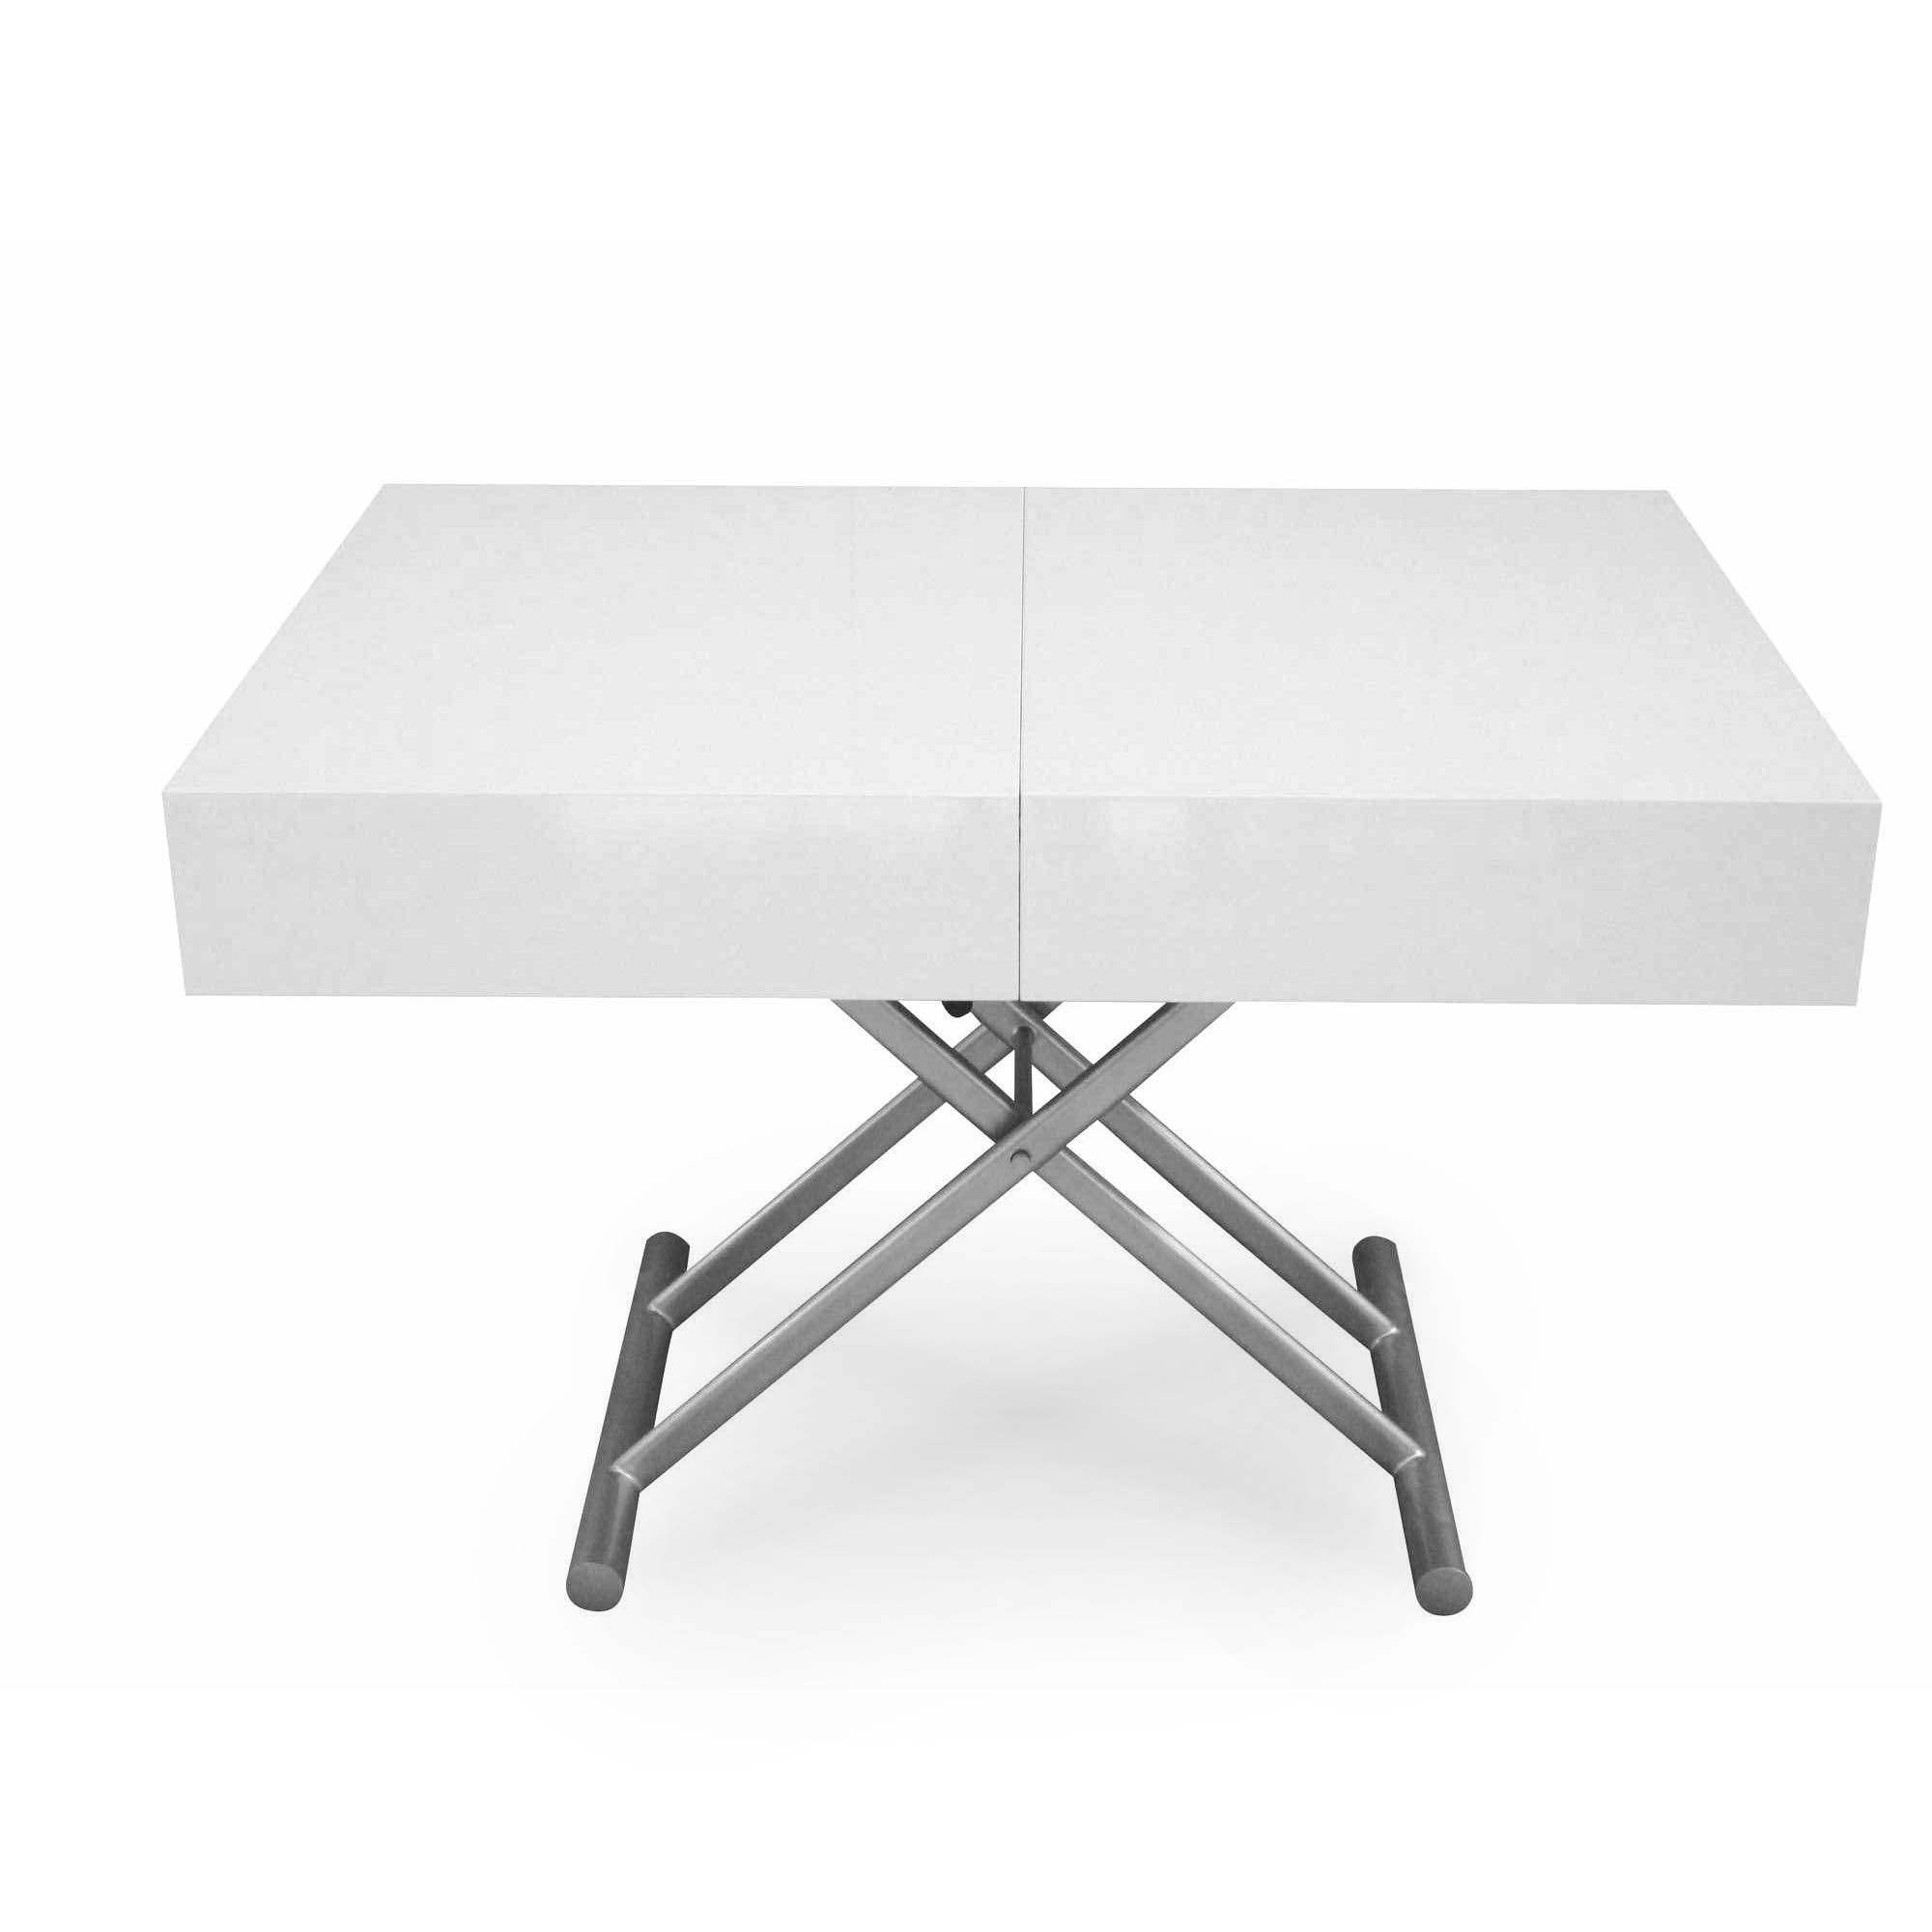 Table basse relevable extensible laquee blanc smart xxl - DECO IN PARIS